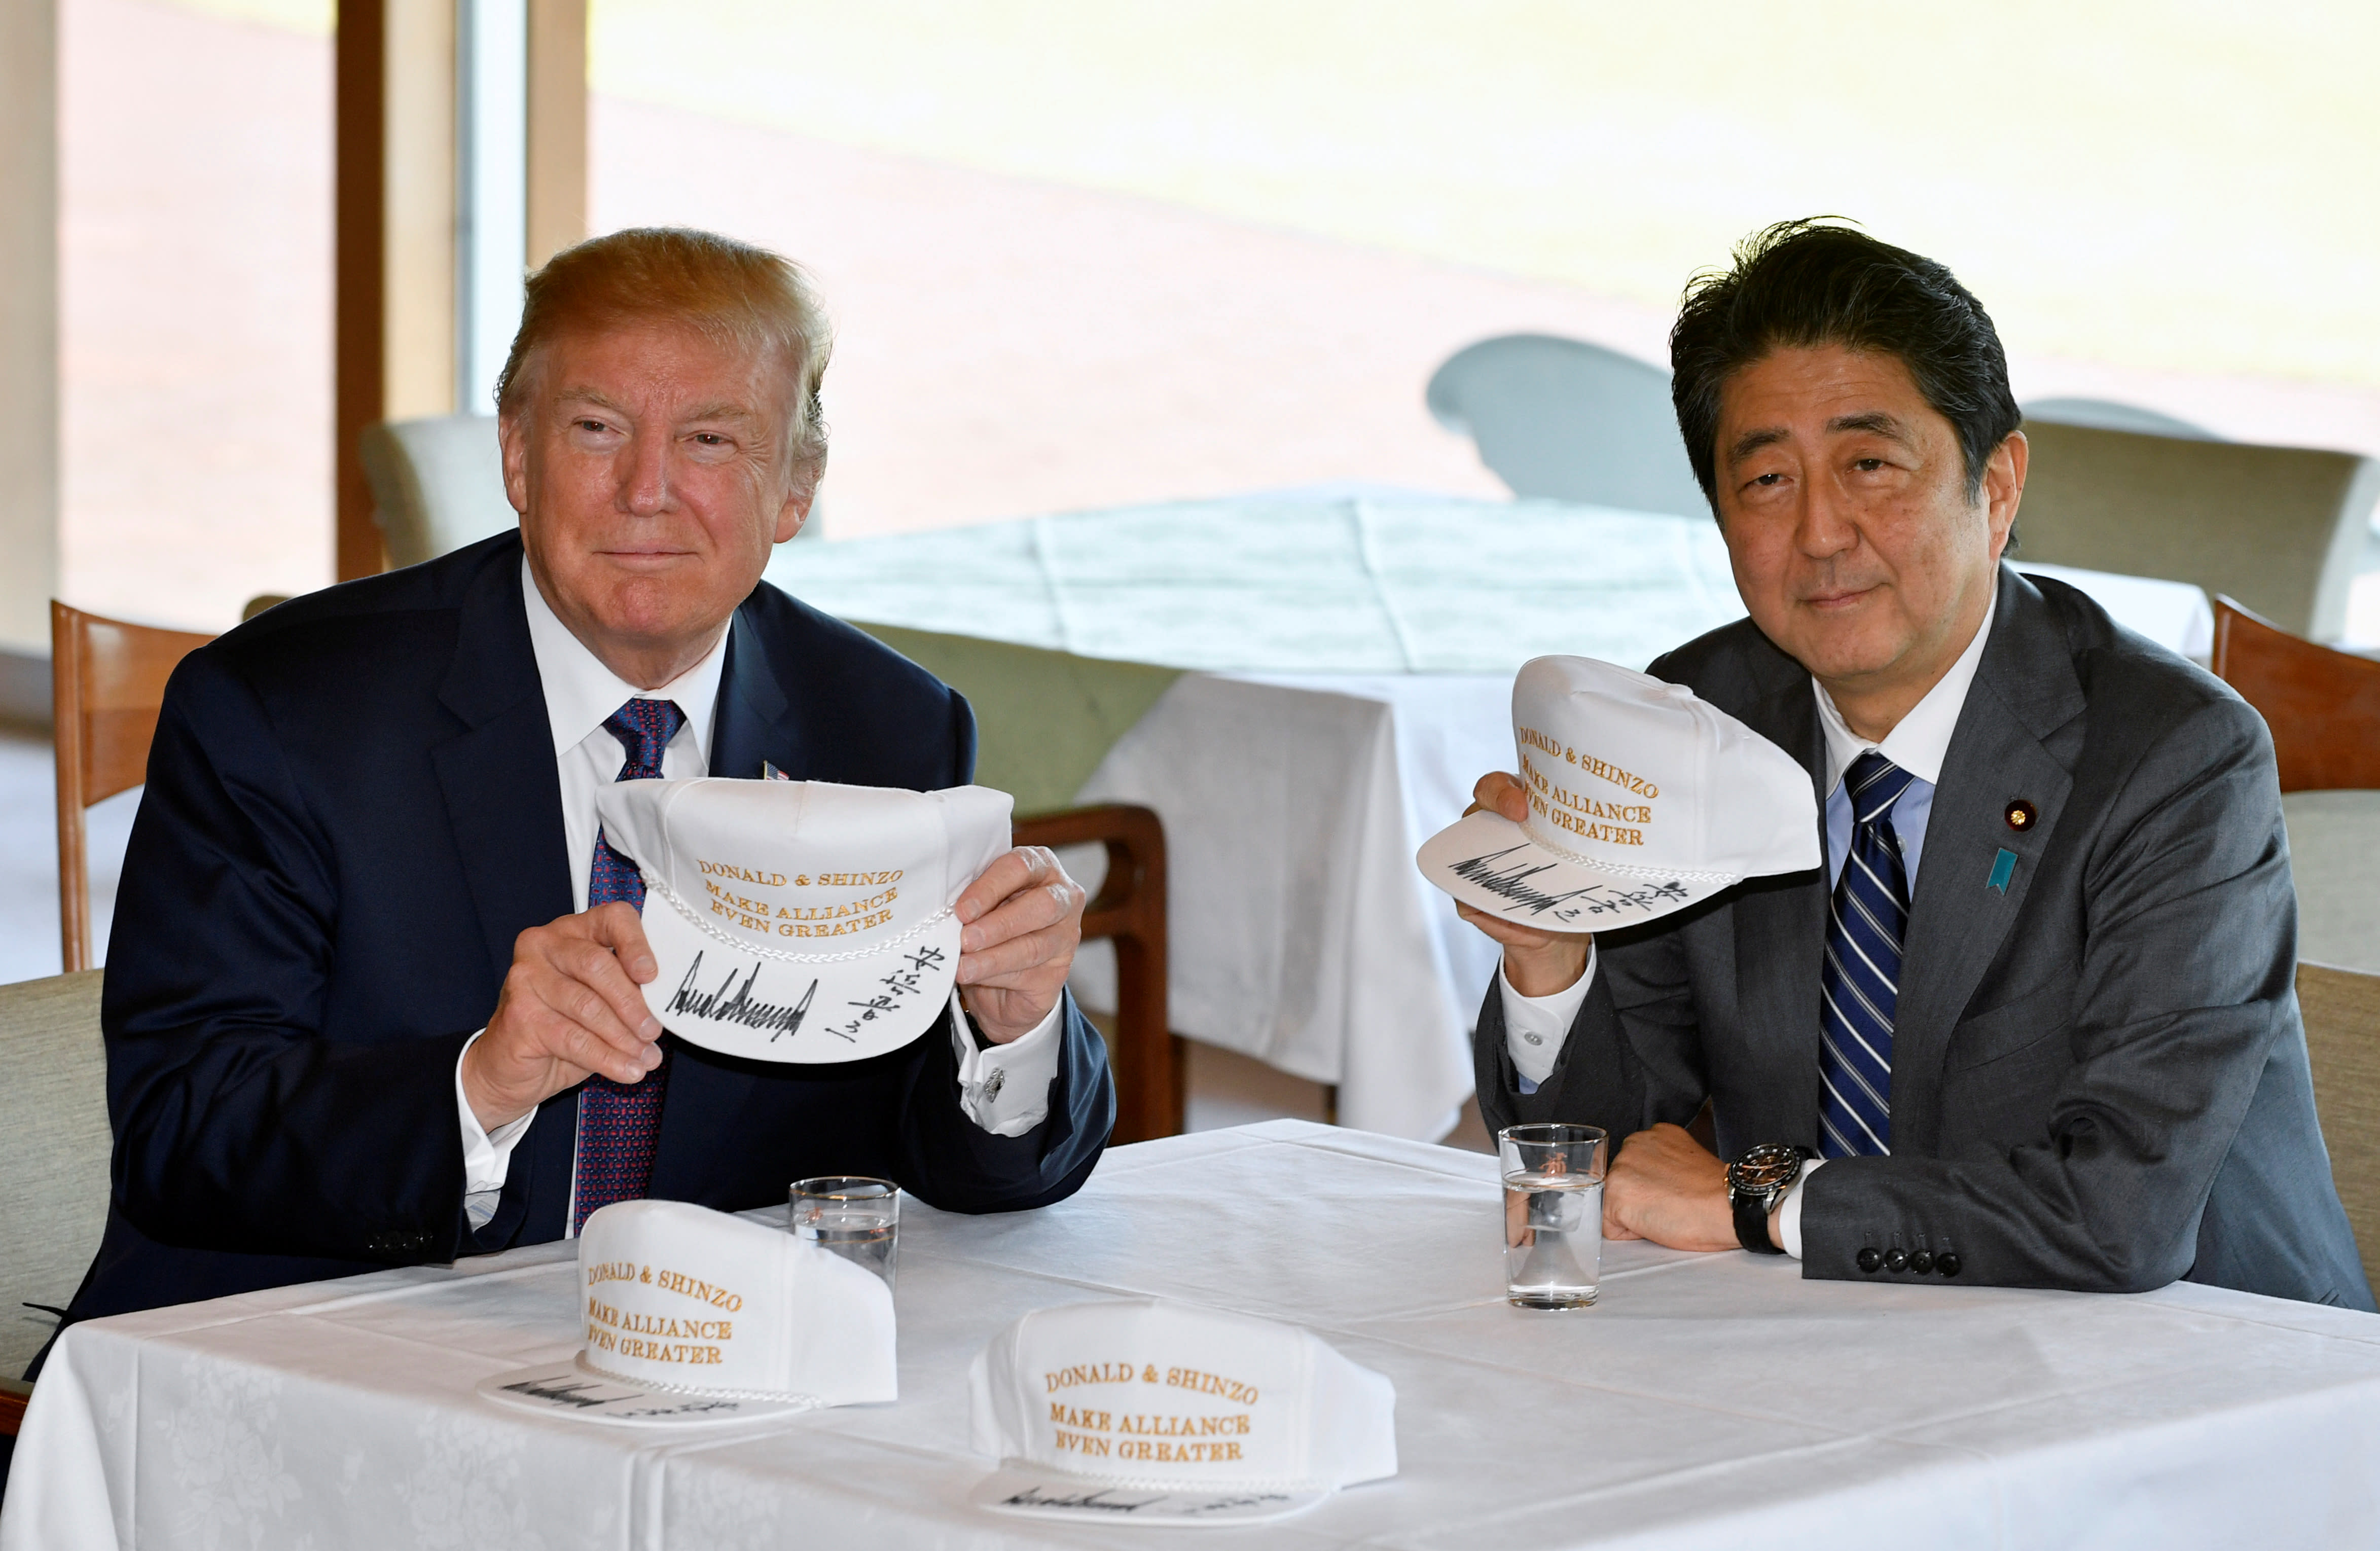 US President Donald Trump and Japanese Prime Minister Shinzo Abe pose after they signed hats. (REUTERS / FRANK ROBICHON / POOL)